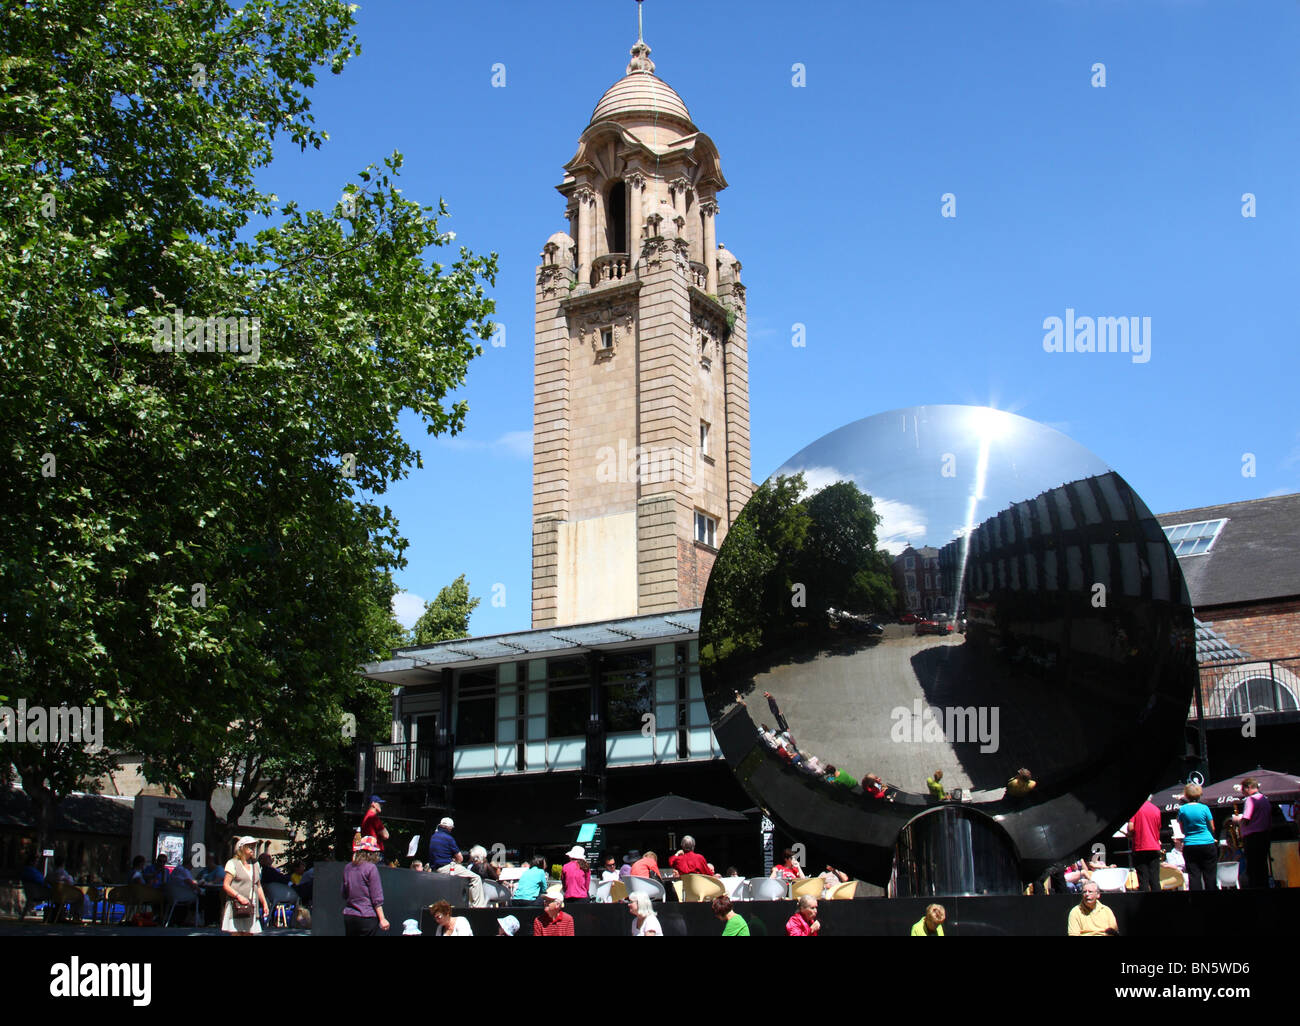 Nottingham Playhouse and Sky Mirror sculpture, Nottingham, England, U.K. - Stock Image